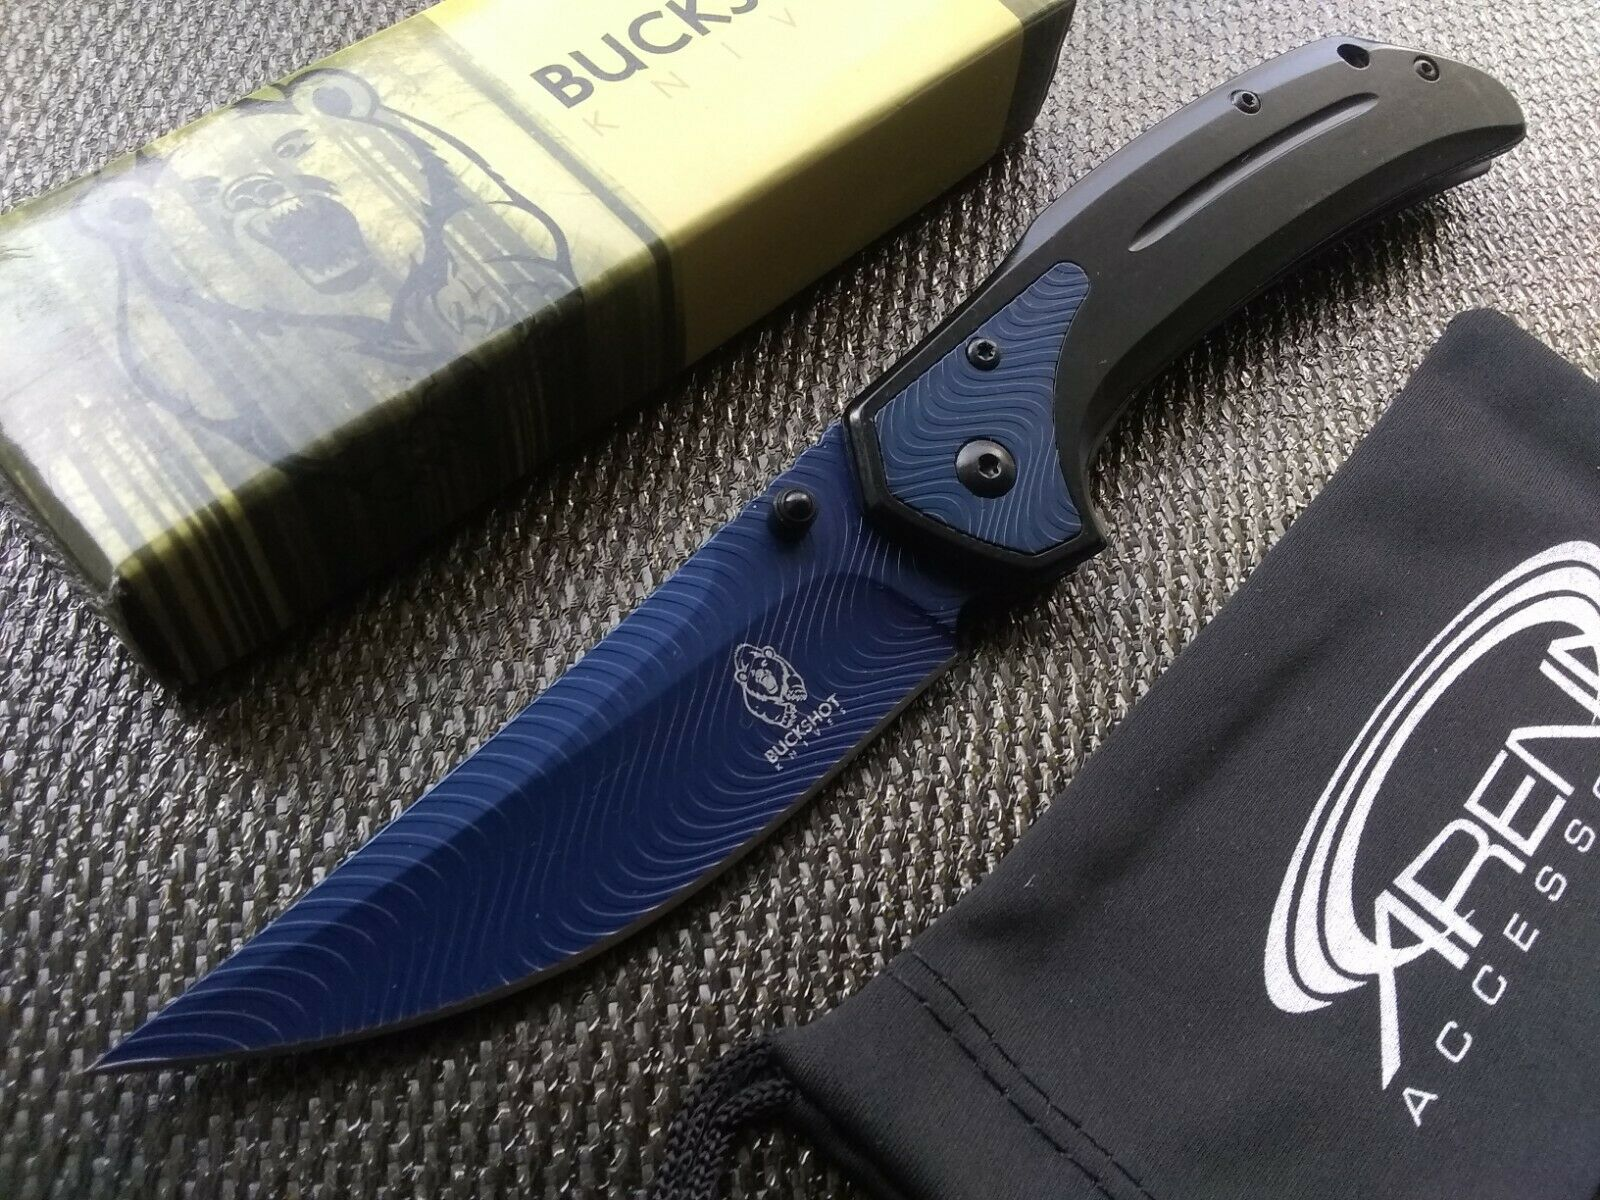 Blue Upswept Curve Blade Frame Lock Pocket Knife w/Deep-Carry Clip EDC Thumbstud